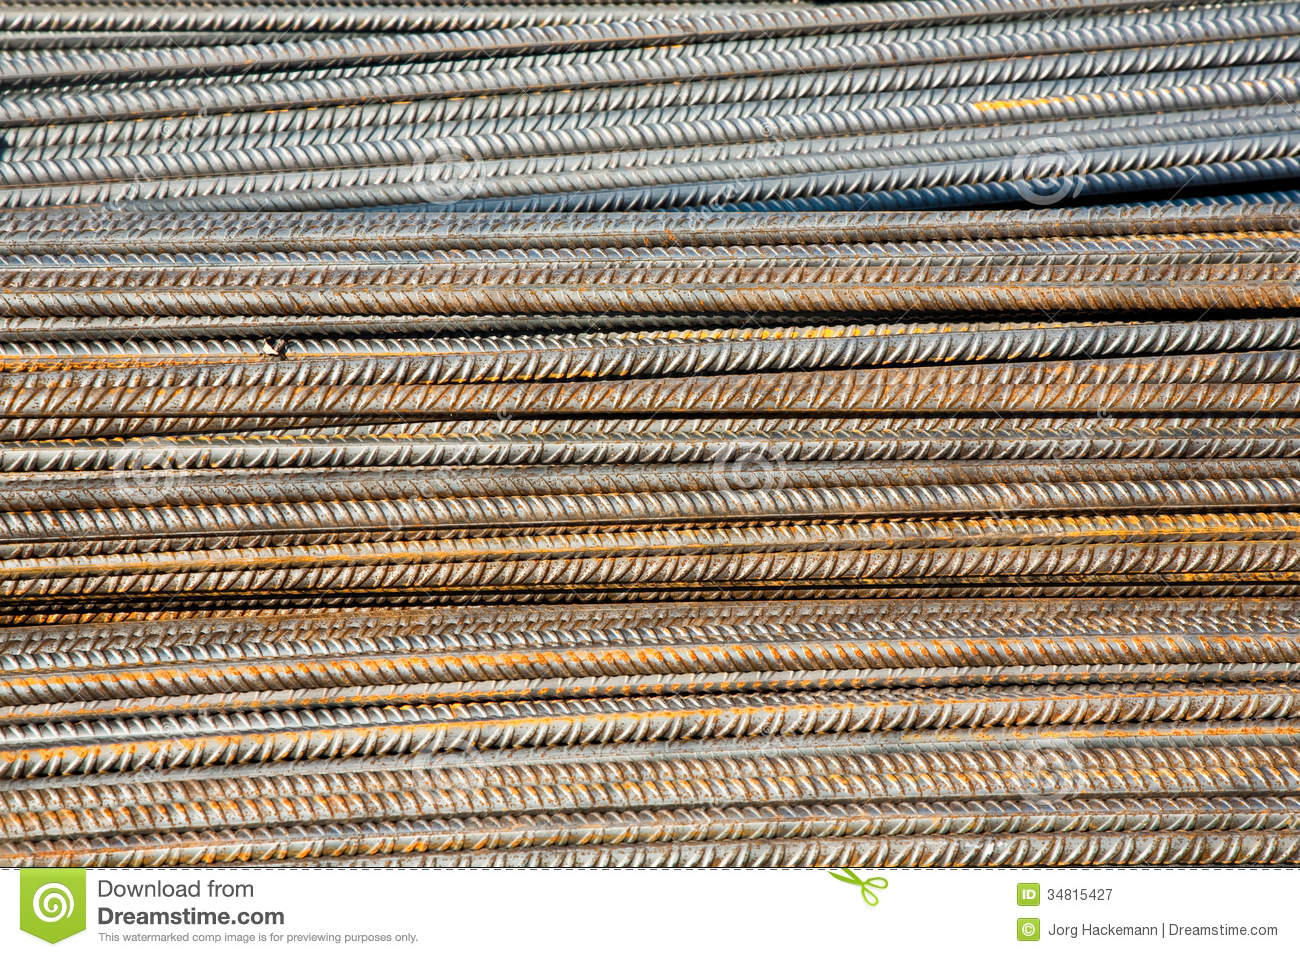 Reinforcing bar in detail